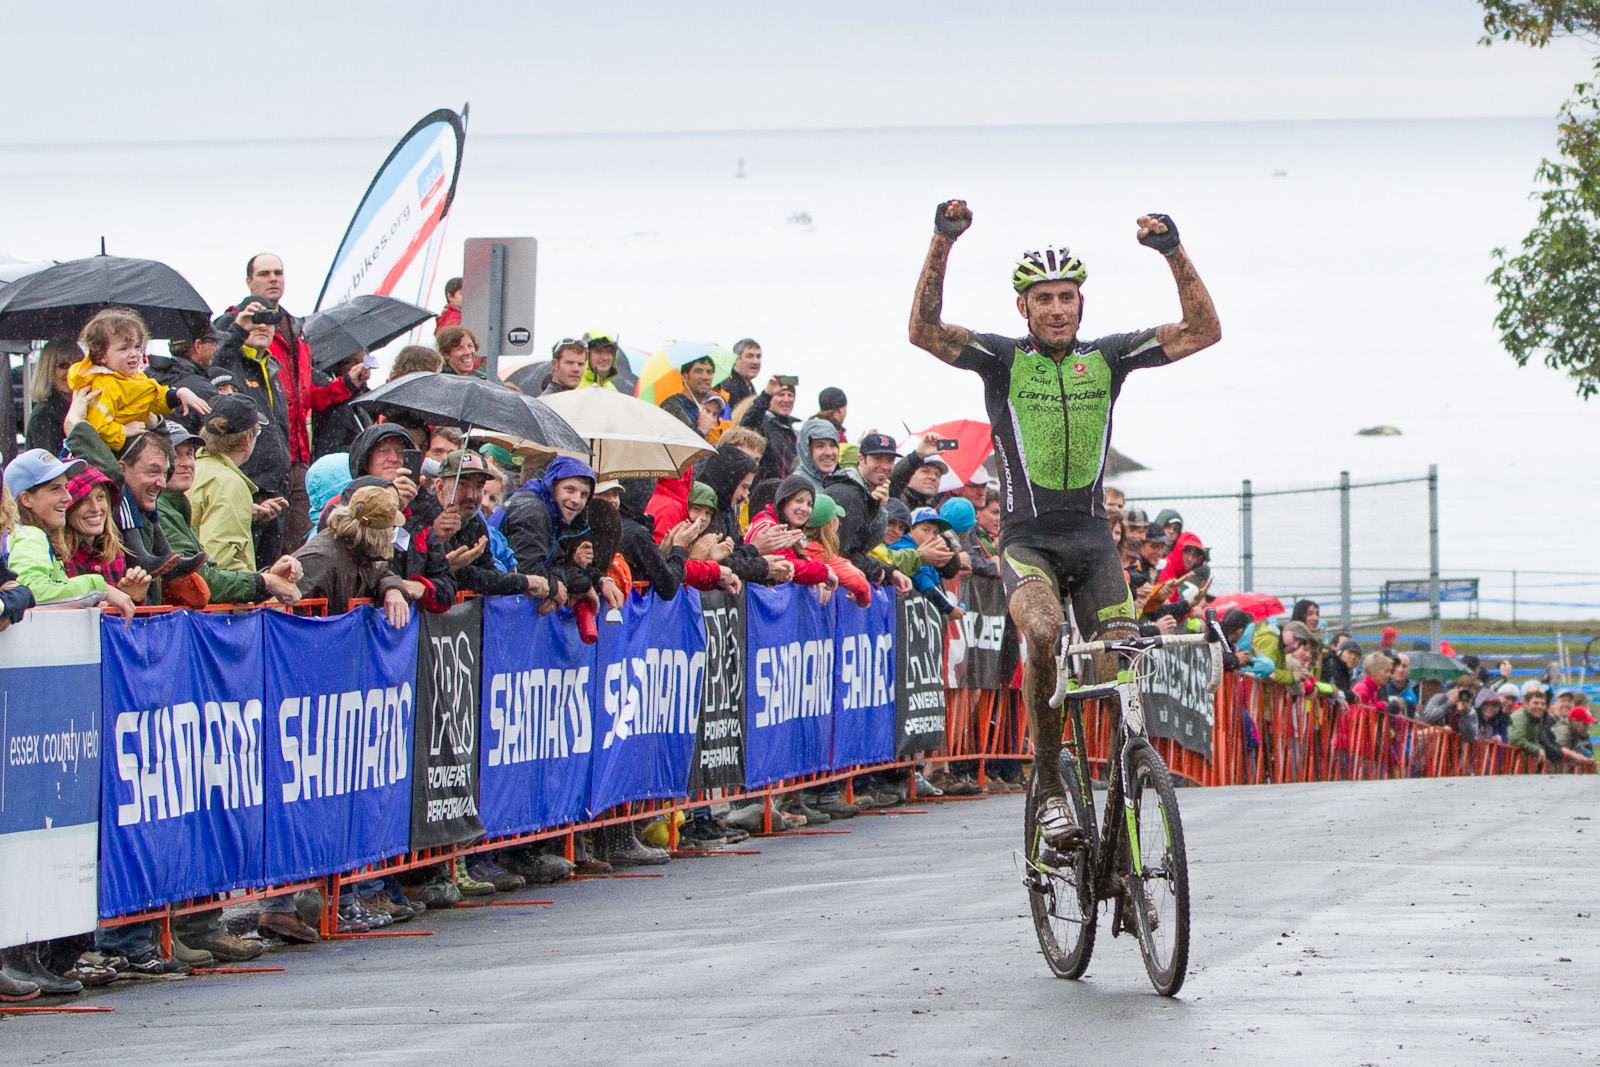 Trebon crosses the line as fans cheer in Gloucester. Photo: Todd Prekaski